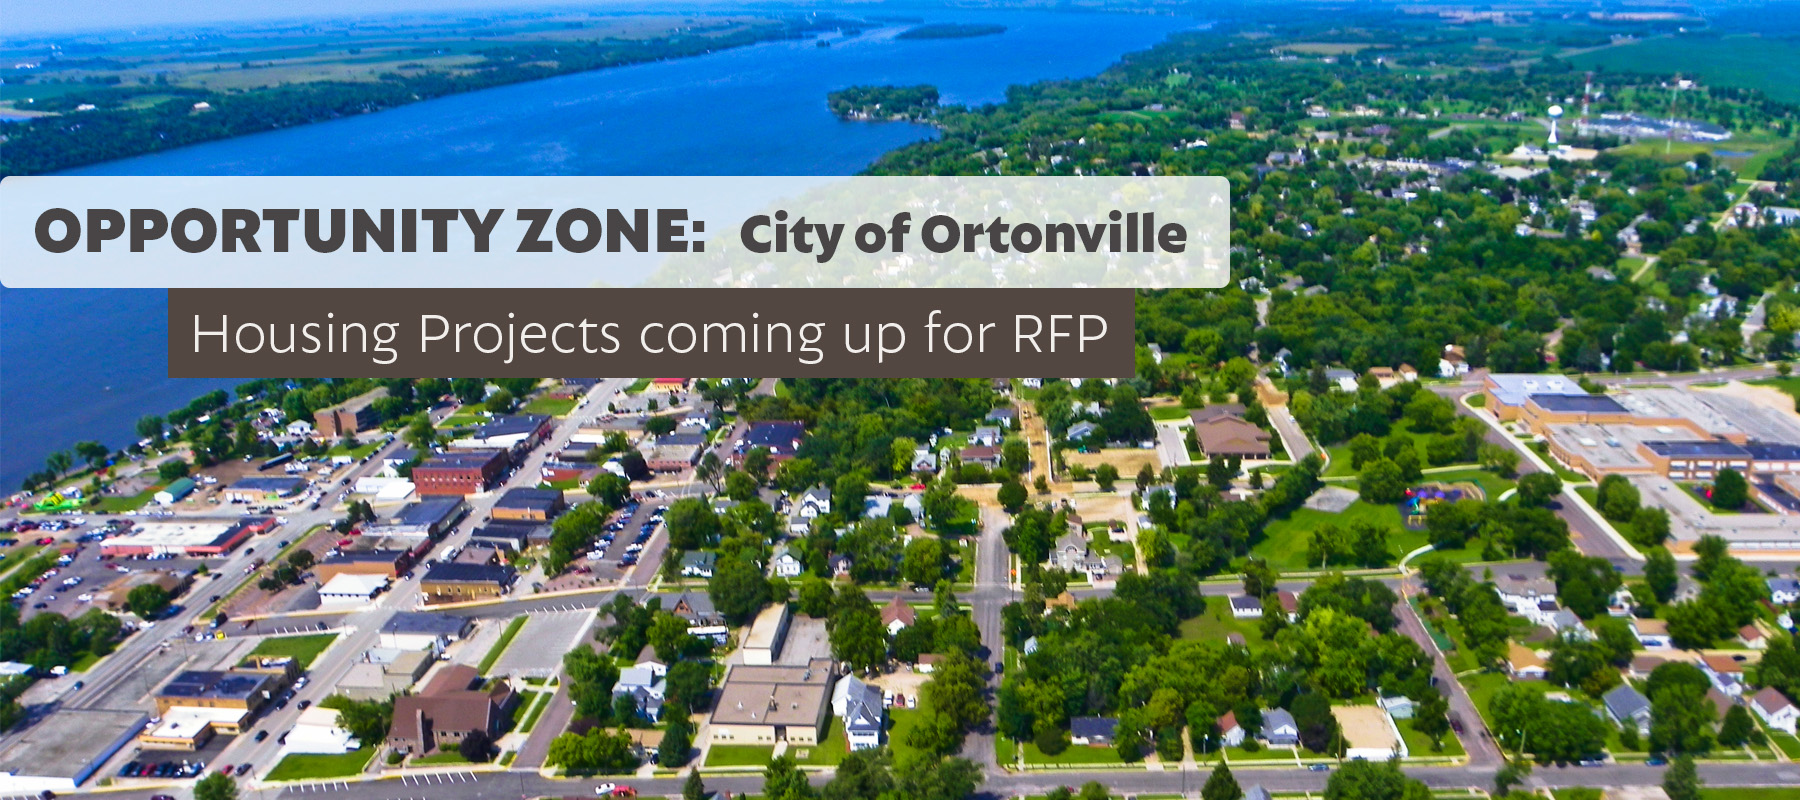 The City of Ortonville has been designated as an Opportunity Zone